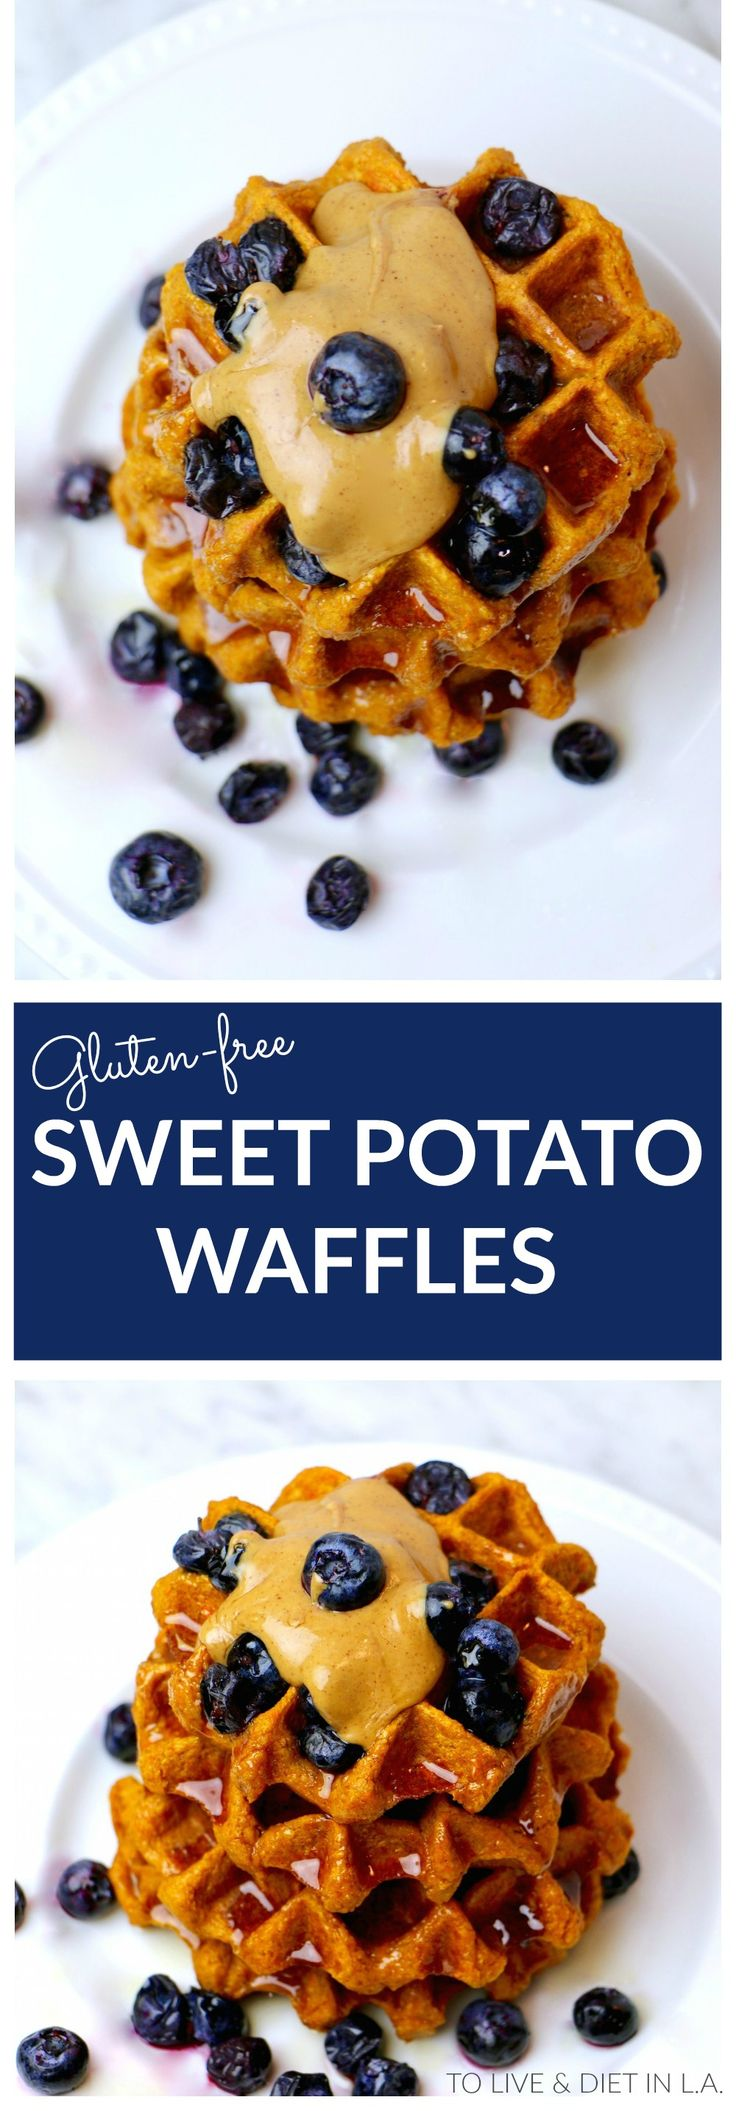 Healthy Sweet Potato Belgium Waffles - Made with oat flour, sweet potatoes, and whole healthy ingredients! Gluten-free - can be made vegan.